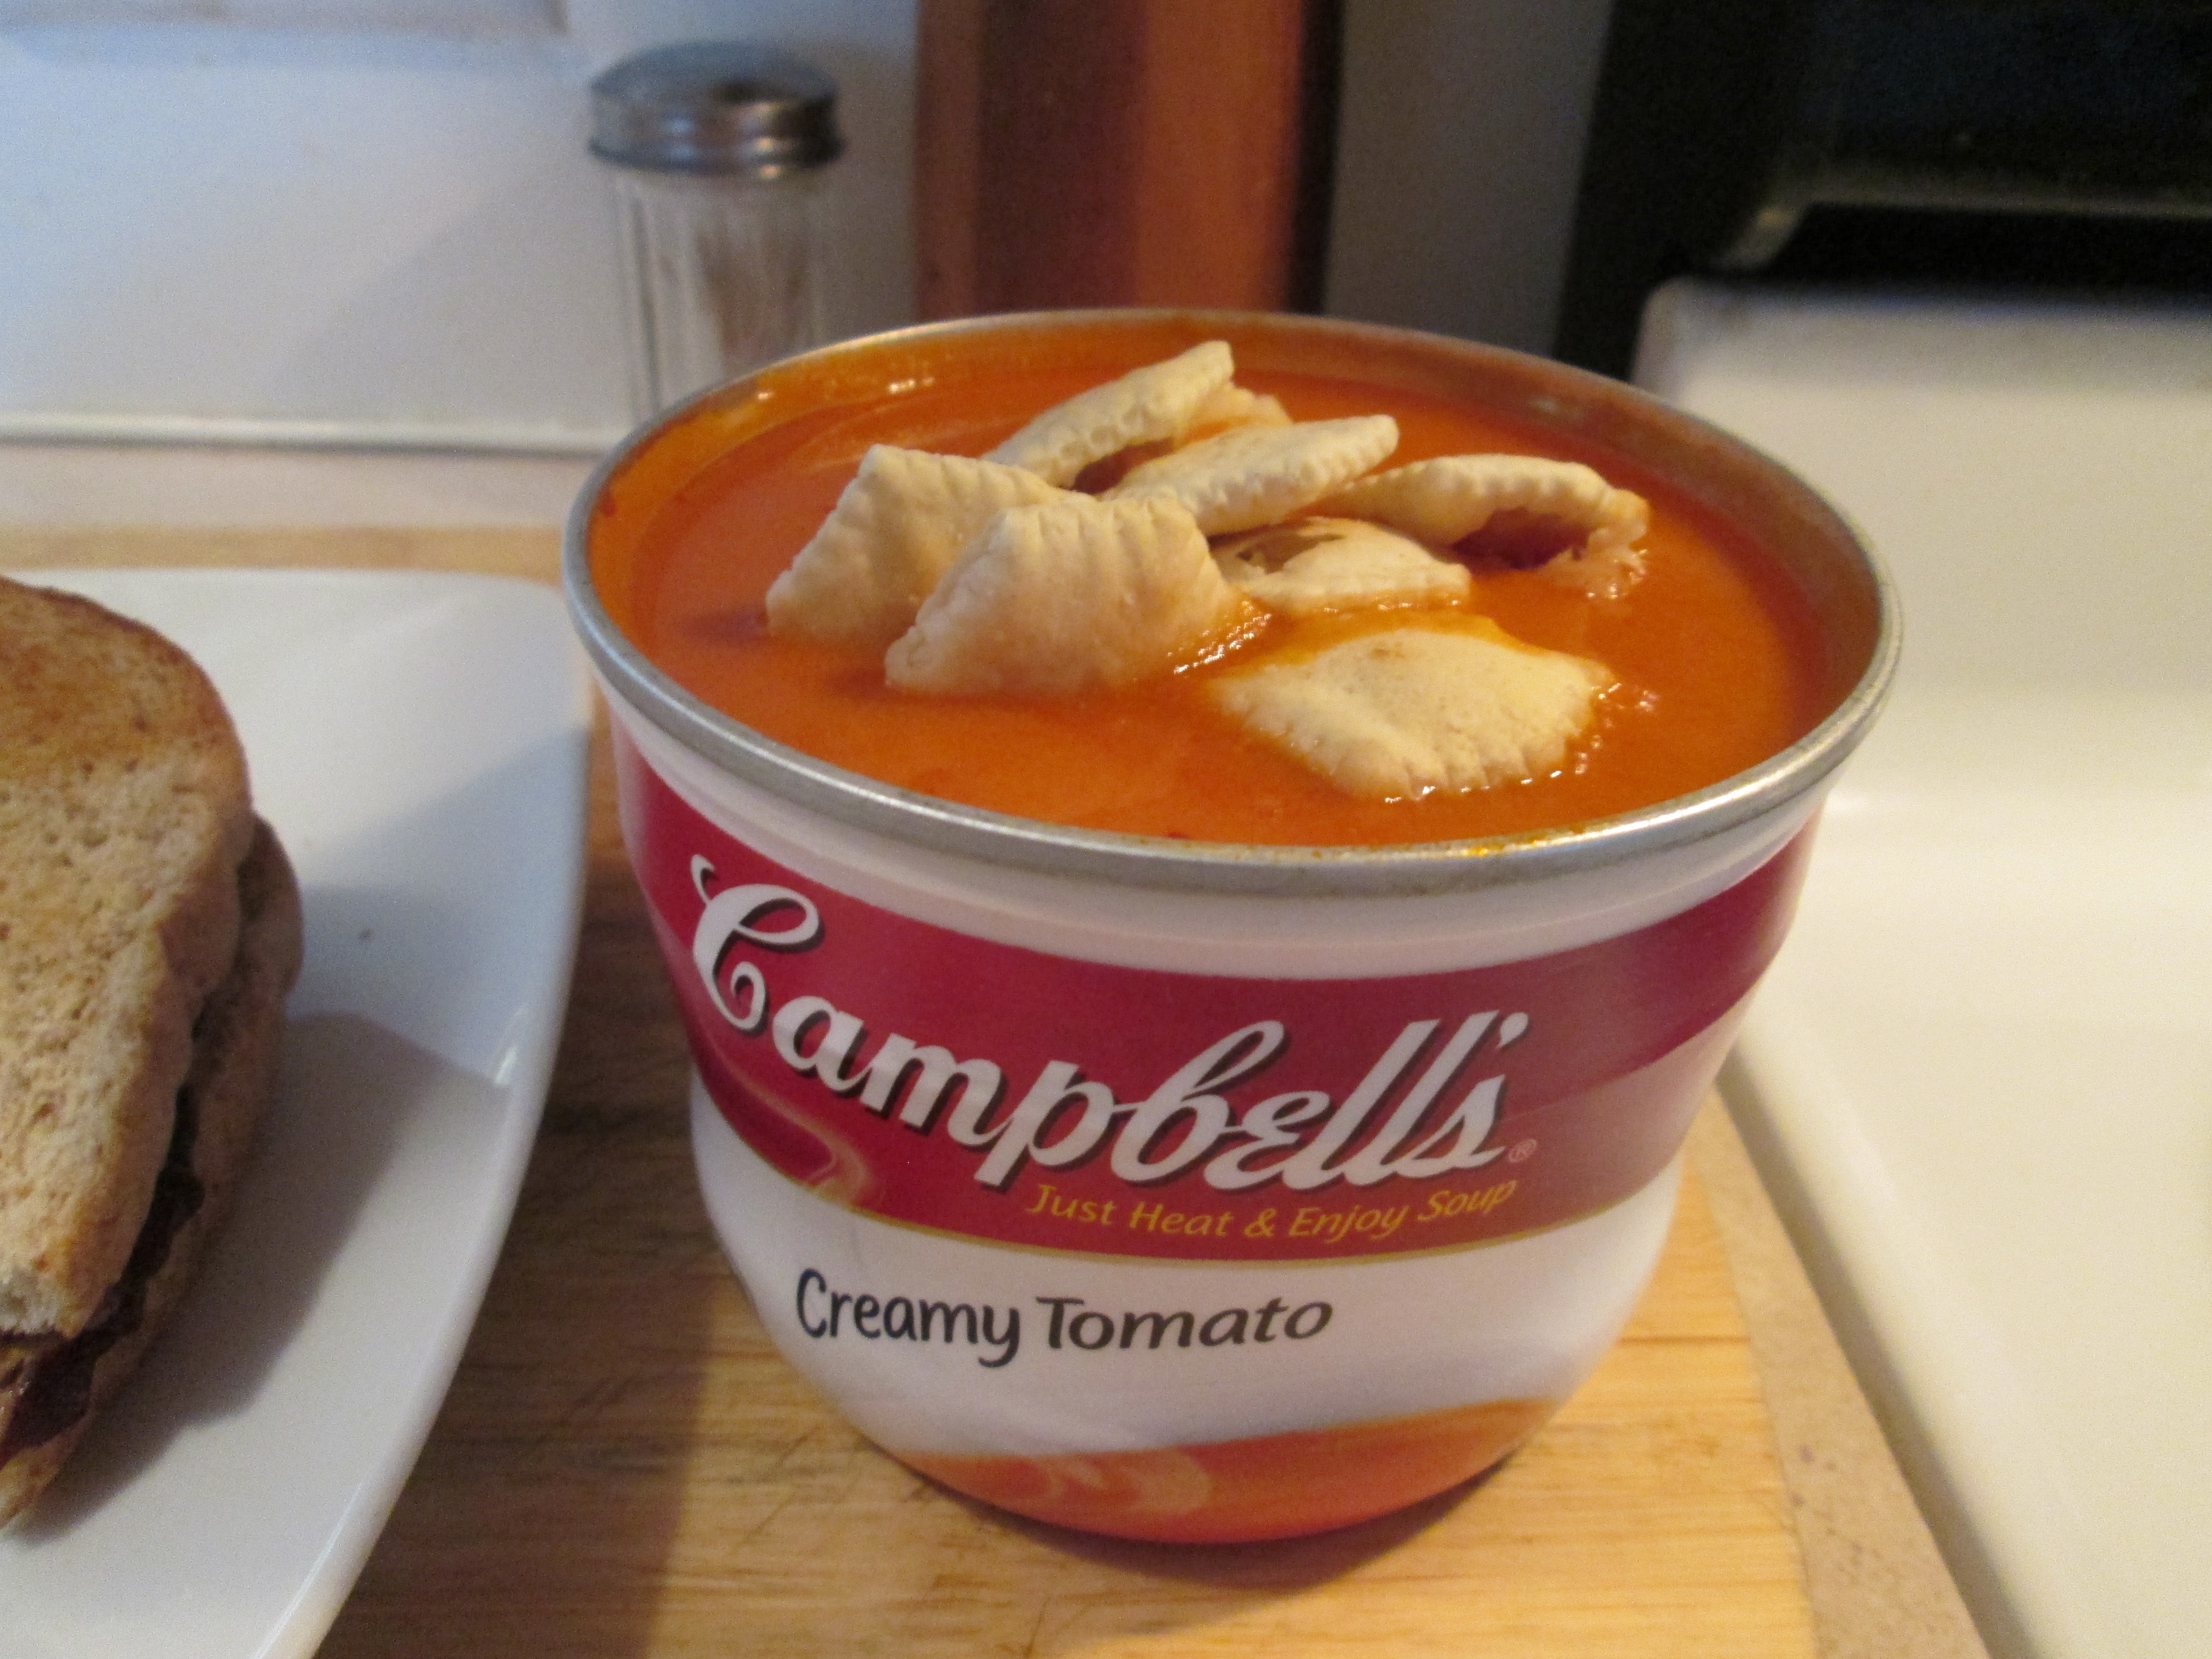 Campbells Creamy Tomato Soup My Meals are on Wheels